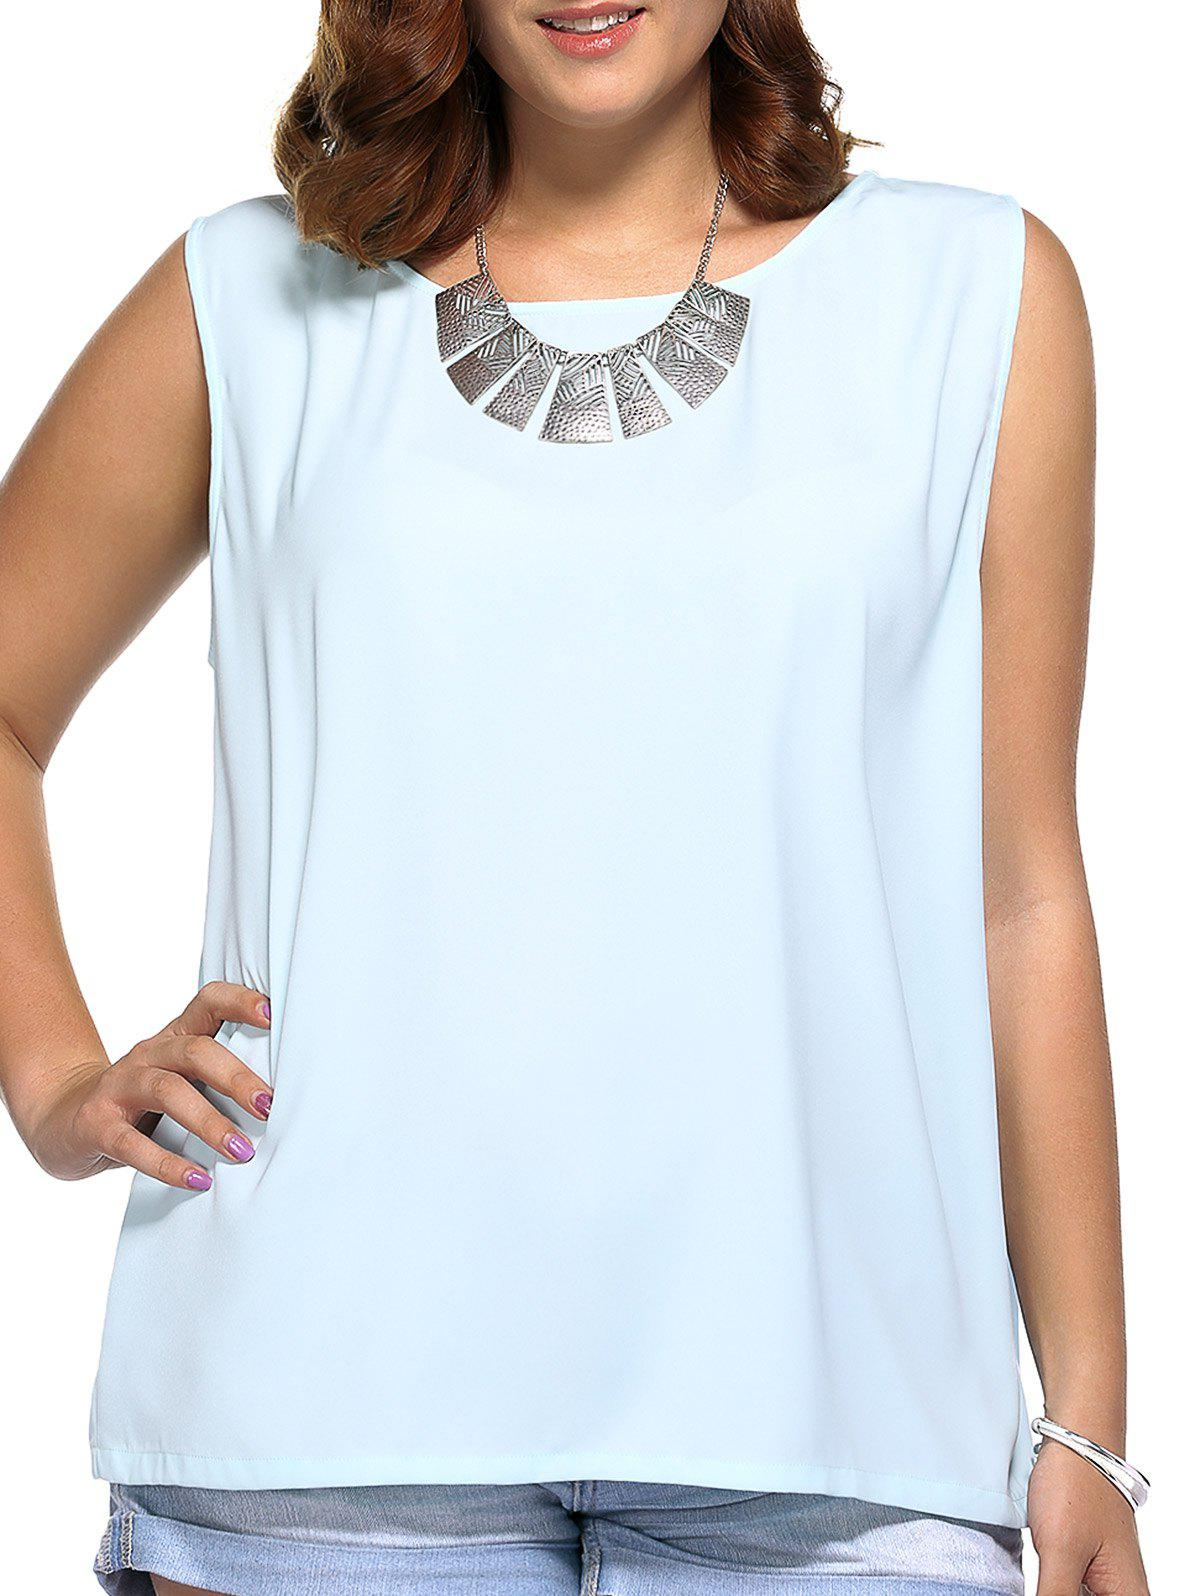 Oversized Cute Tie Back Cut Out Blouse - LIGHT BLUE 2XL